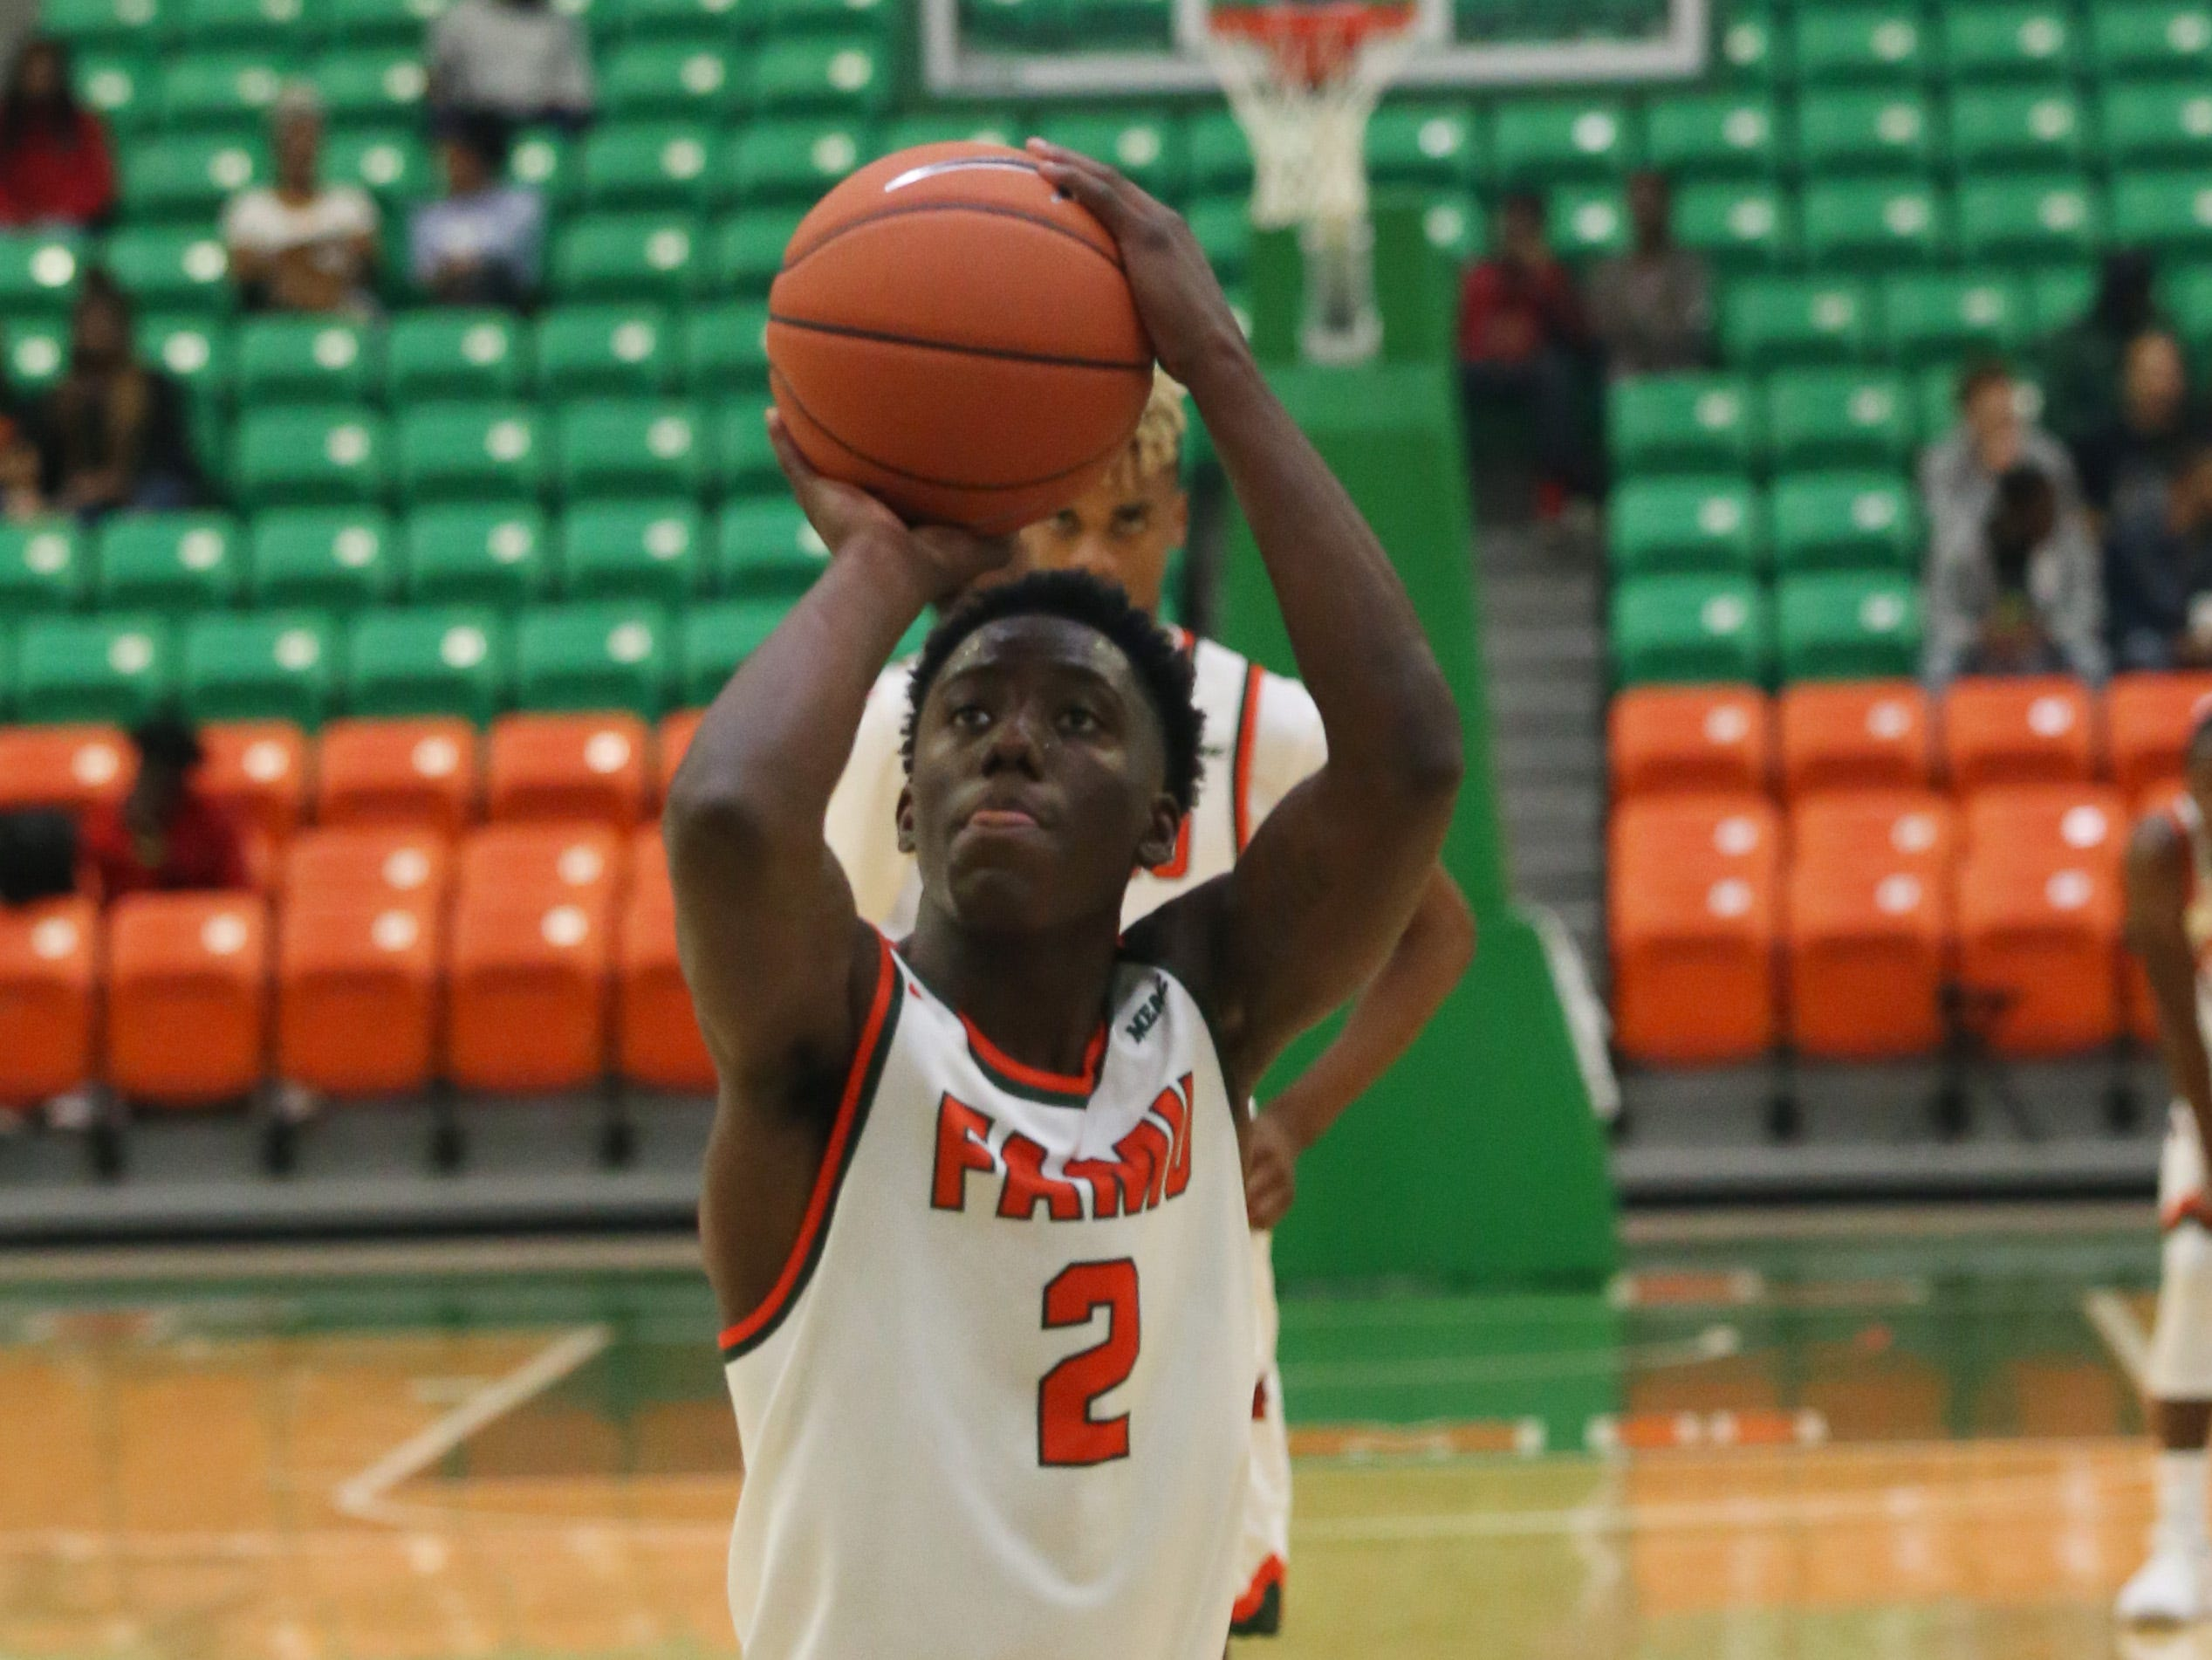 Florida A&M Rattlers guard Kamron Reaves (2) shoots a free throw as the FAMU Rattlers take on the Tuskegee Golden Tigers in their first home game of the season in the Lawson Center, Saturday, Nov. 10, 2018.